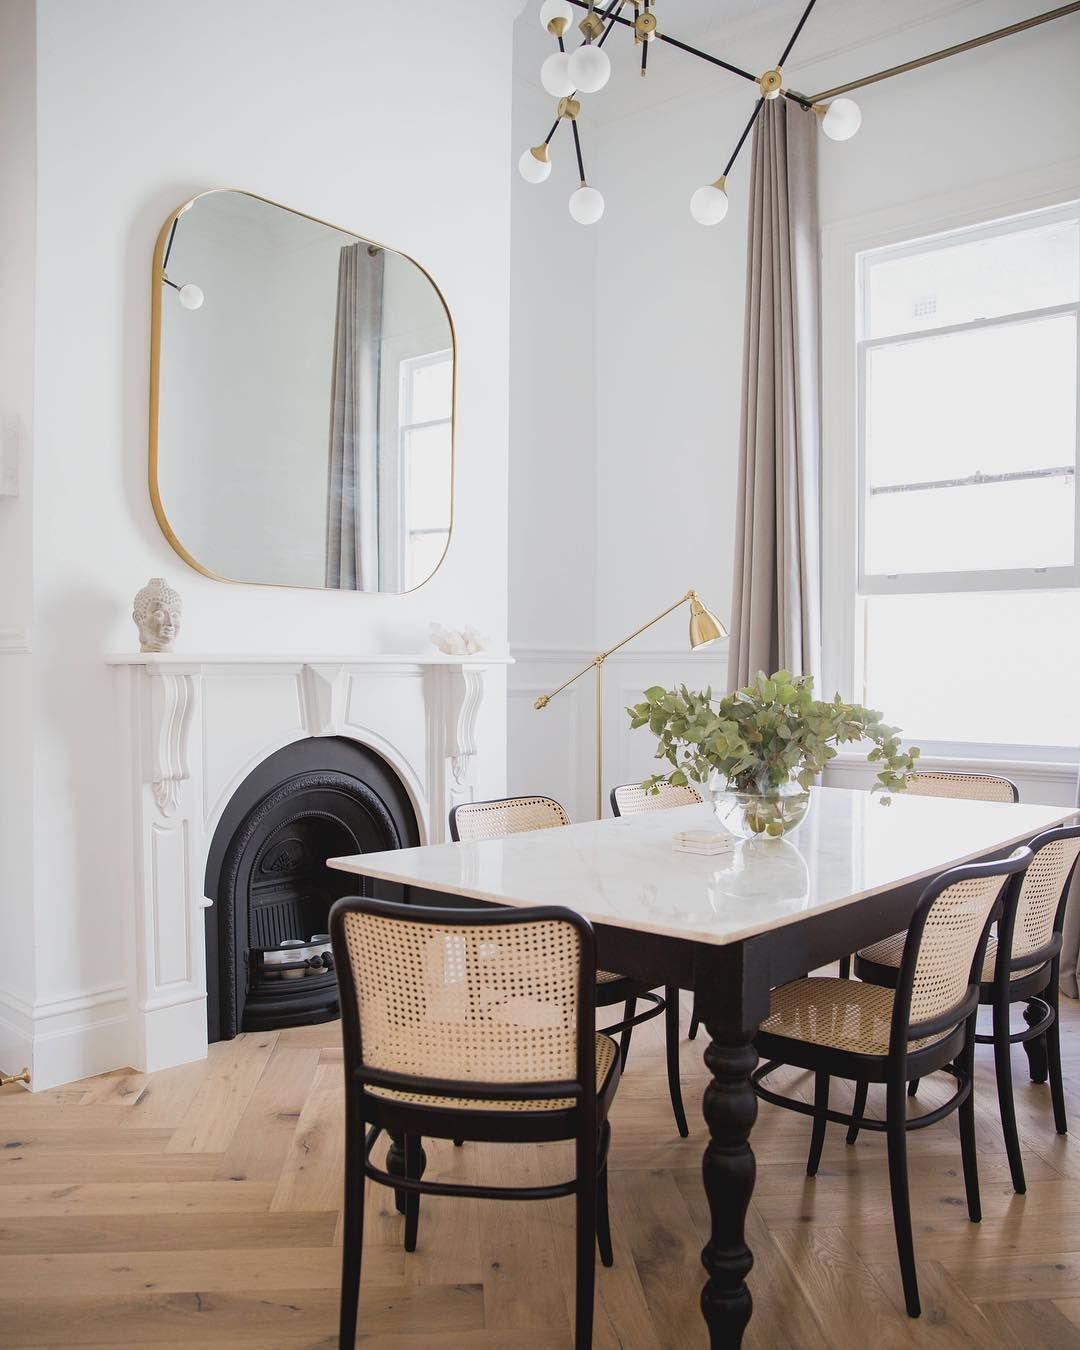 Interior Design Inspiration Photos By Laura Hay Decor Design: This Edwardian Gem Doesn't Skimp On The Details, Complete